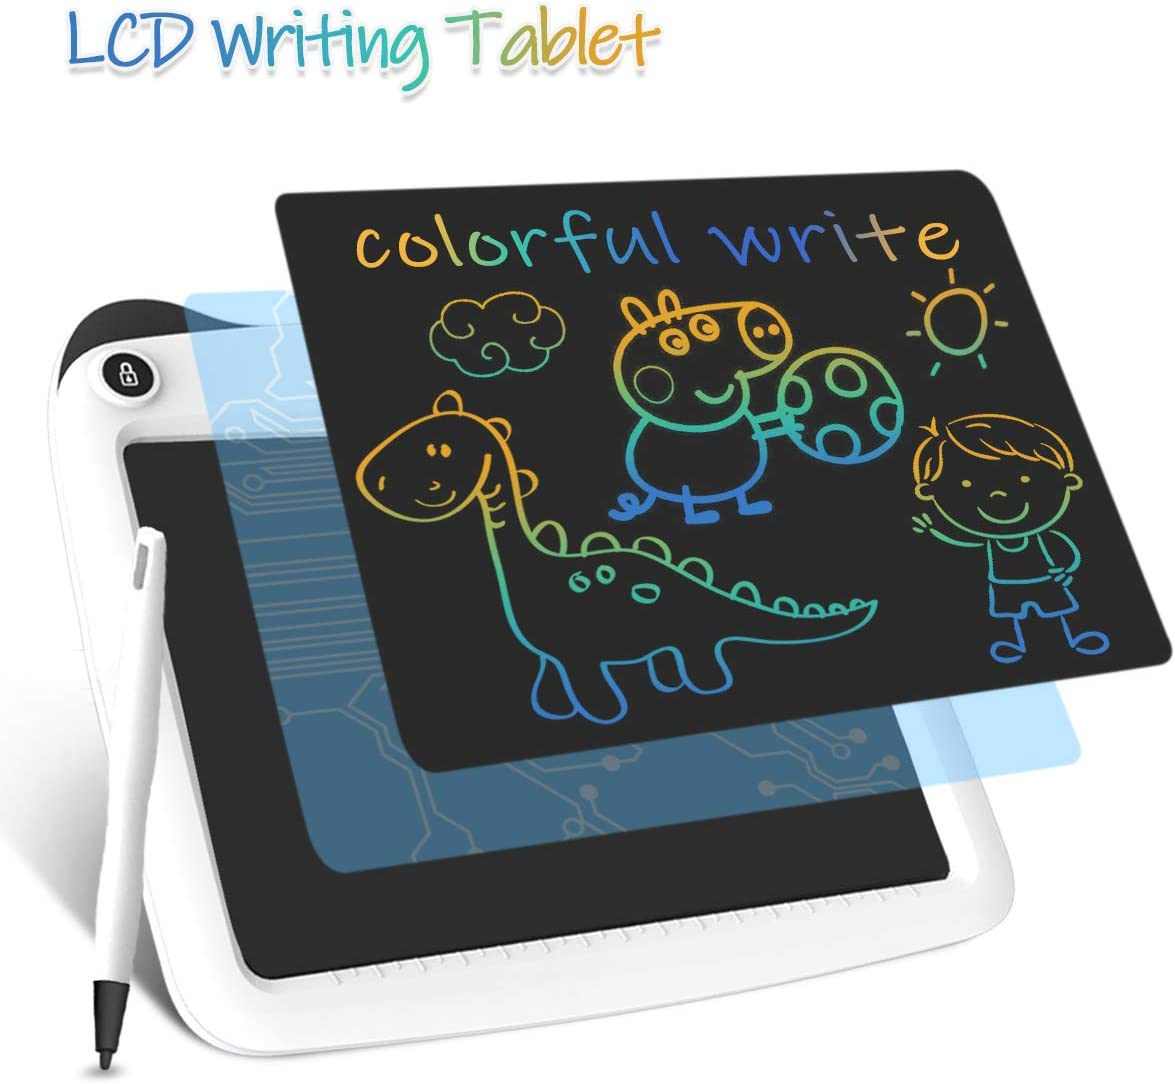 Free Amazon Promo Code 2020 for LCD Writing Tablets